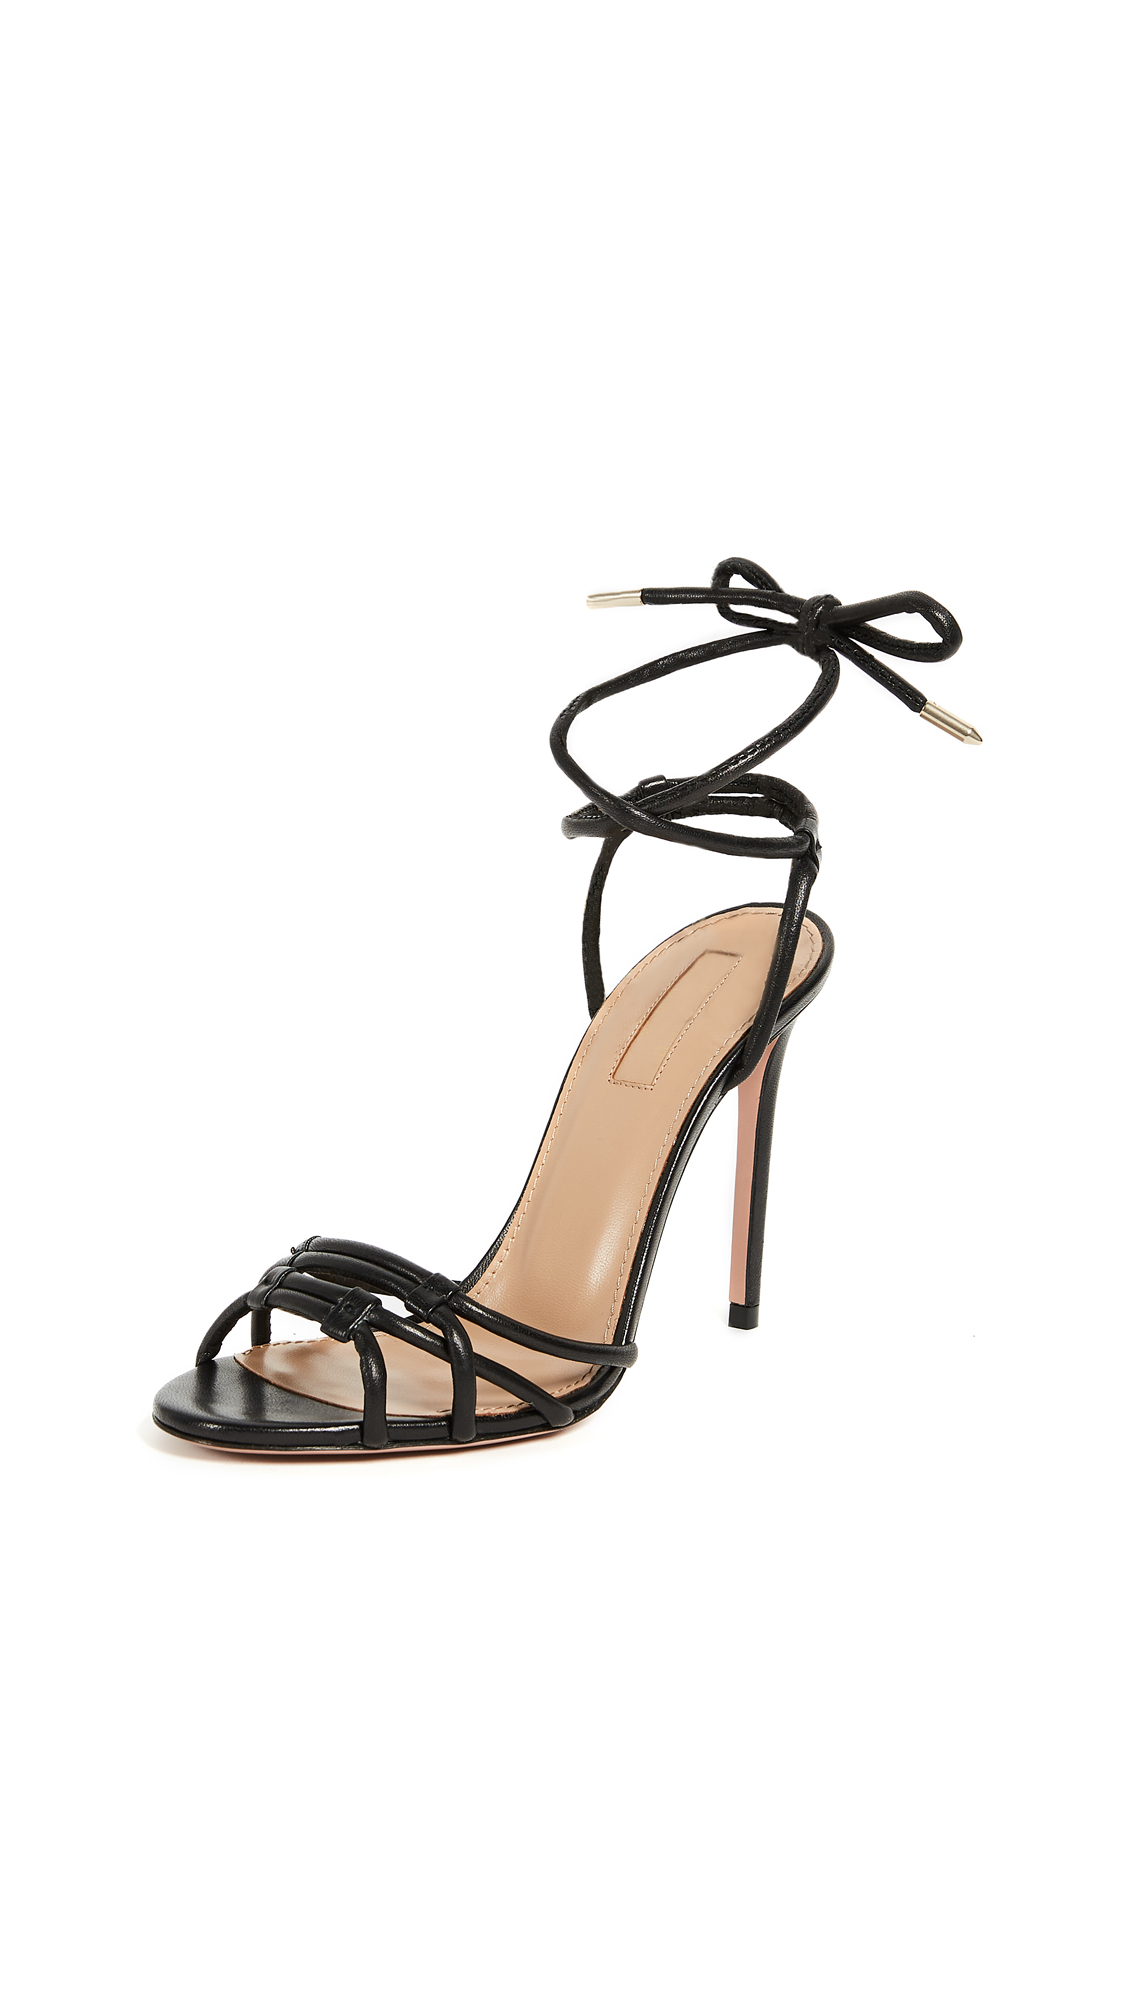 Aquazzura Laura 105 Sandal - Black